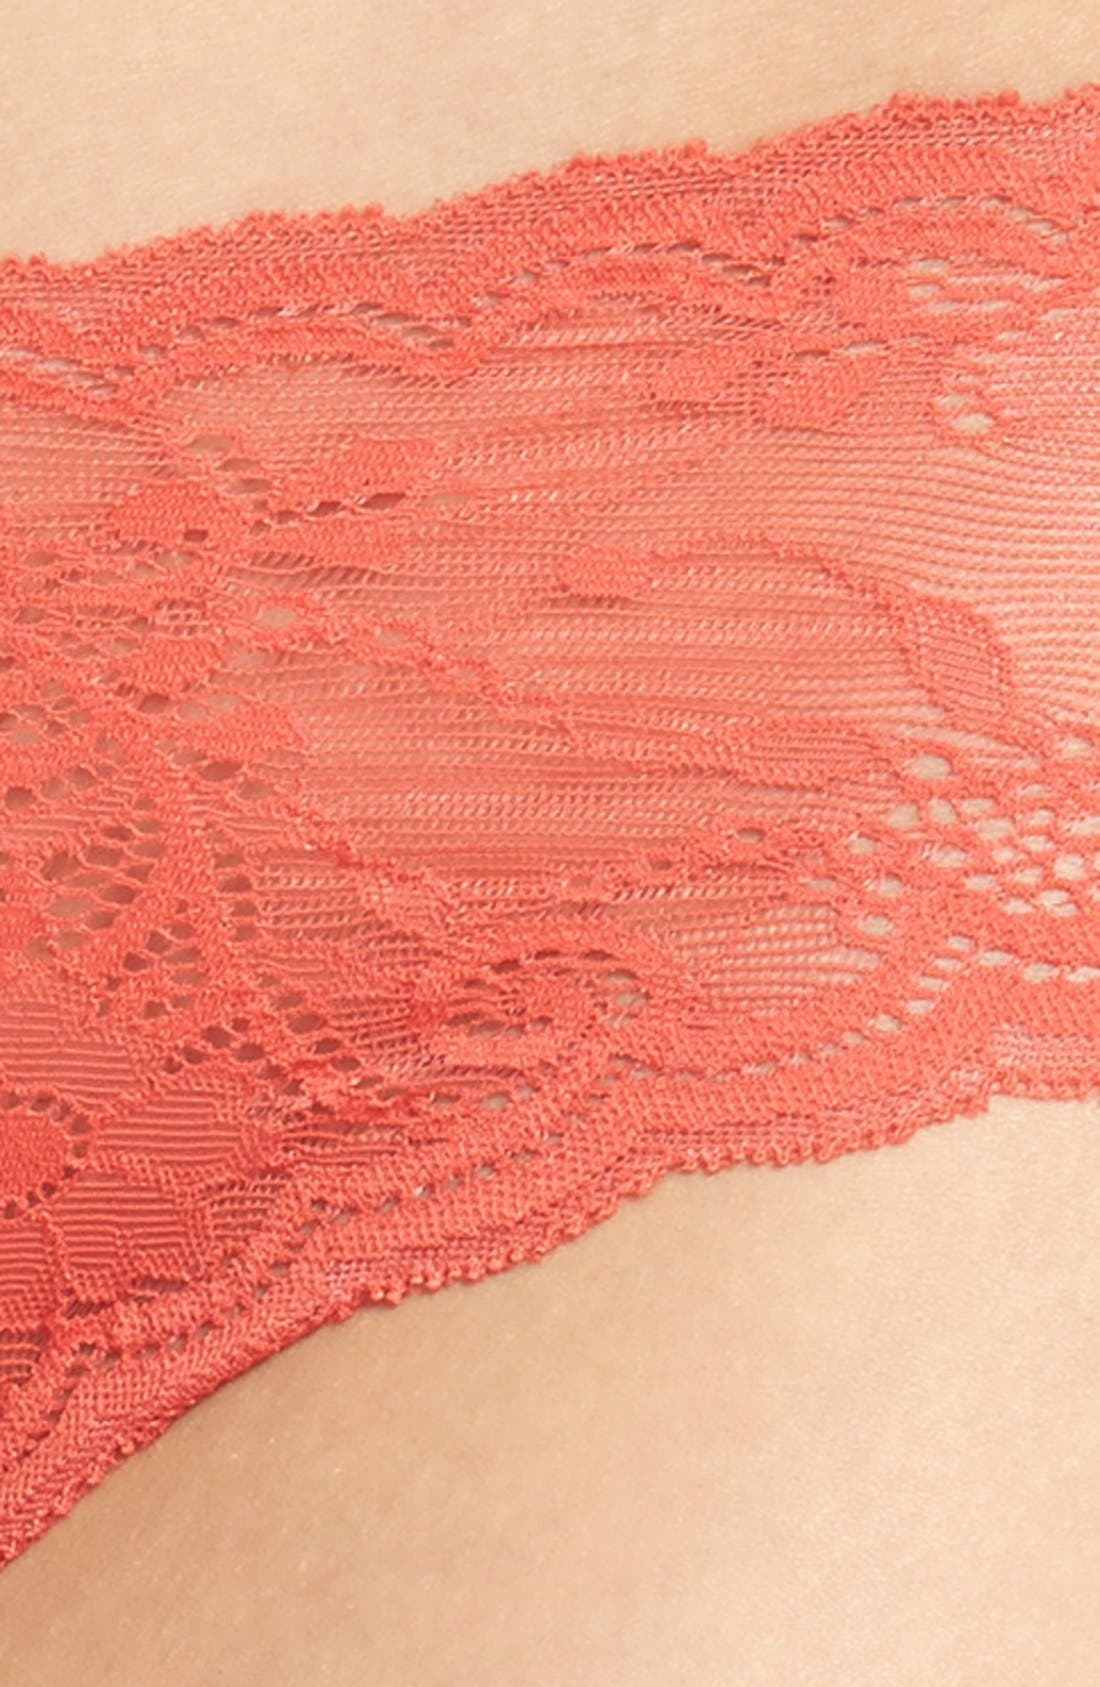 'Trenta' Low Rise Lace Thong,                             Alternate thumbnail 108, color,